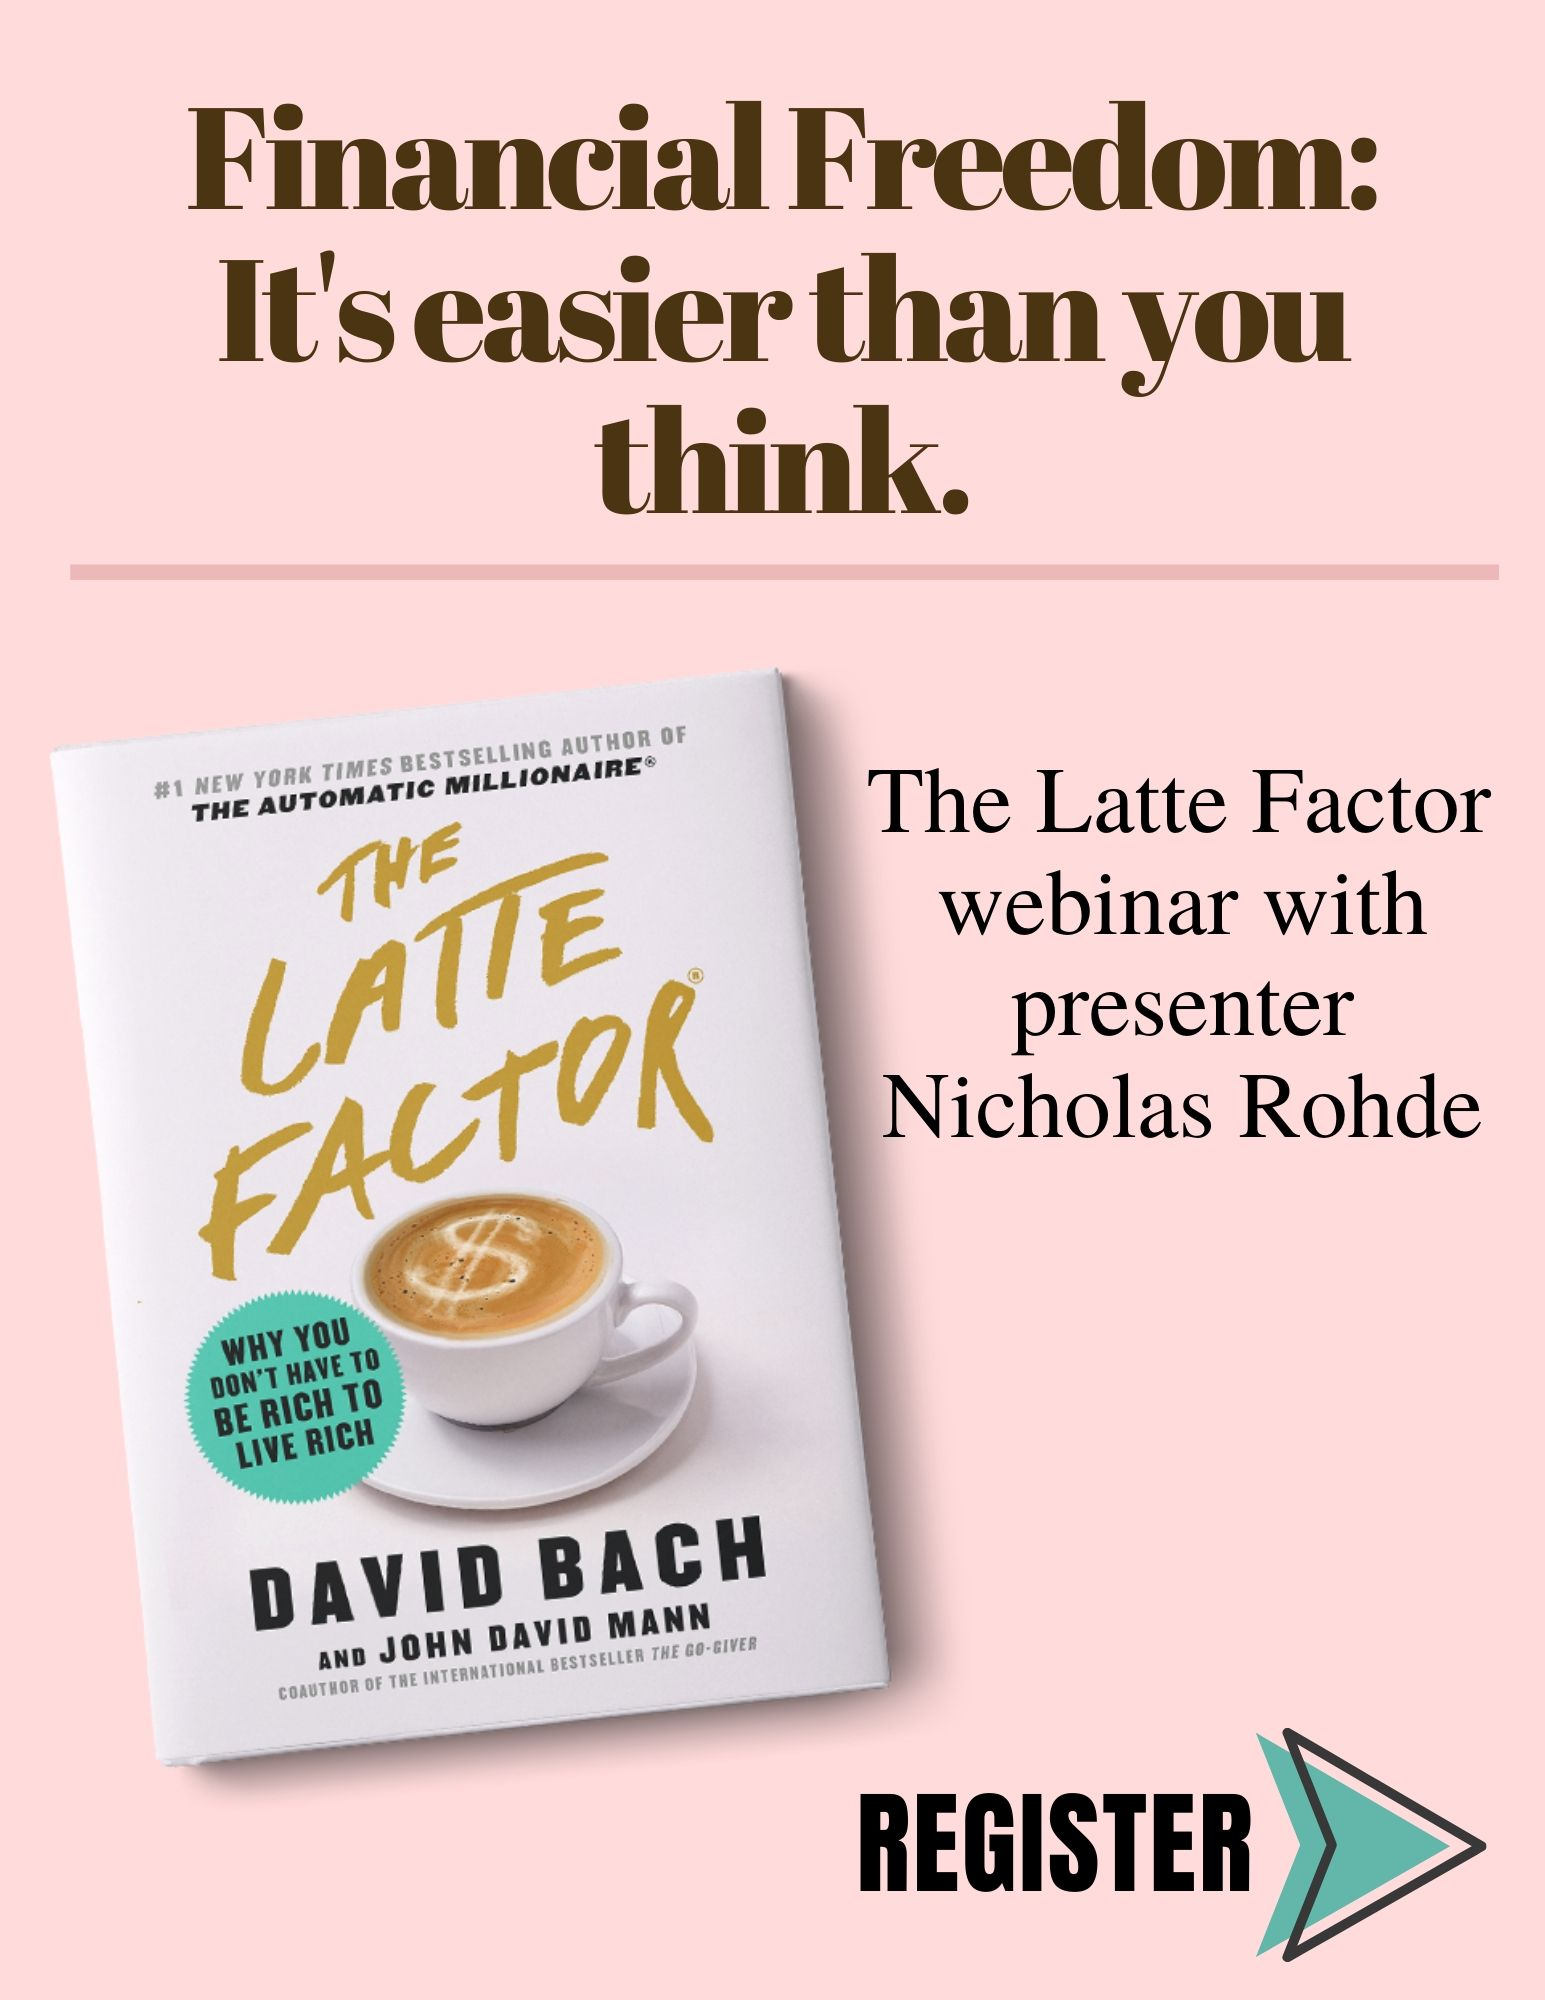 The Latte Factor webinar with presenter Nicholas Rohde